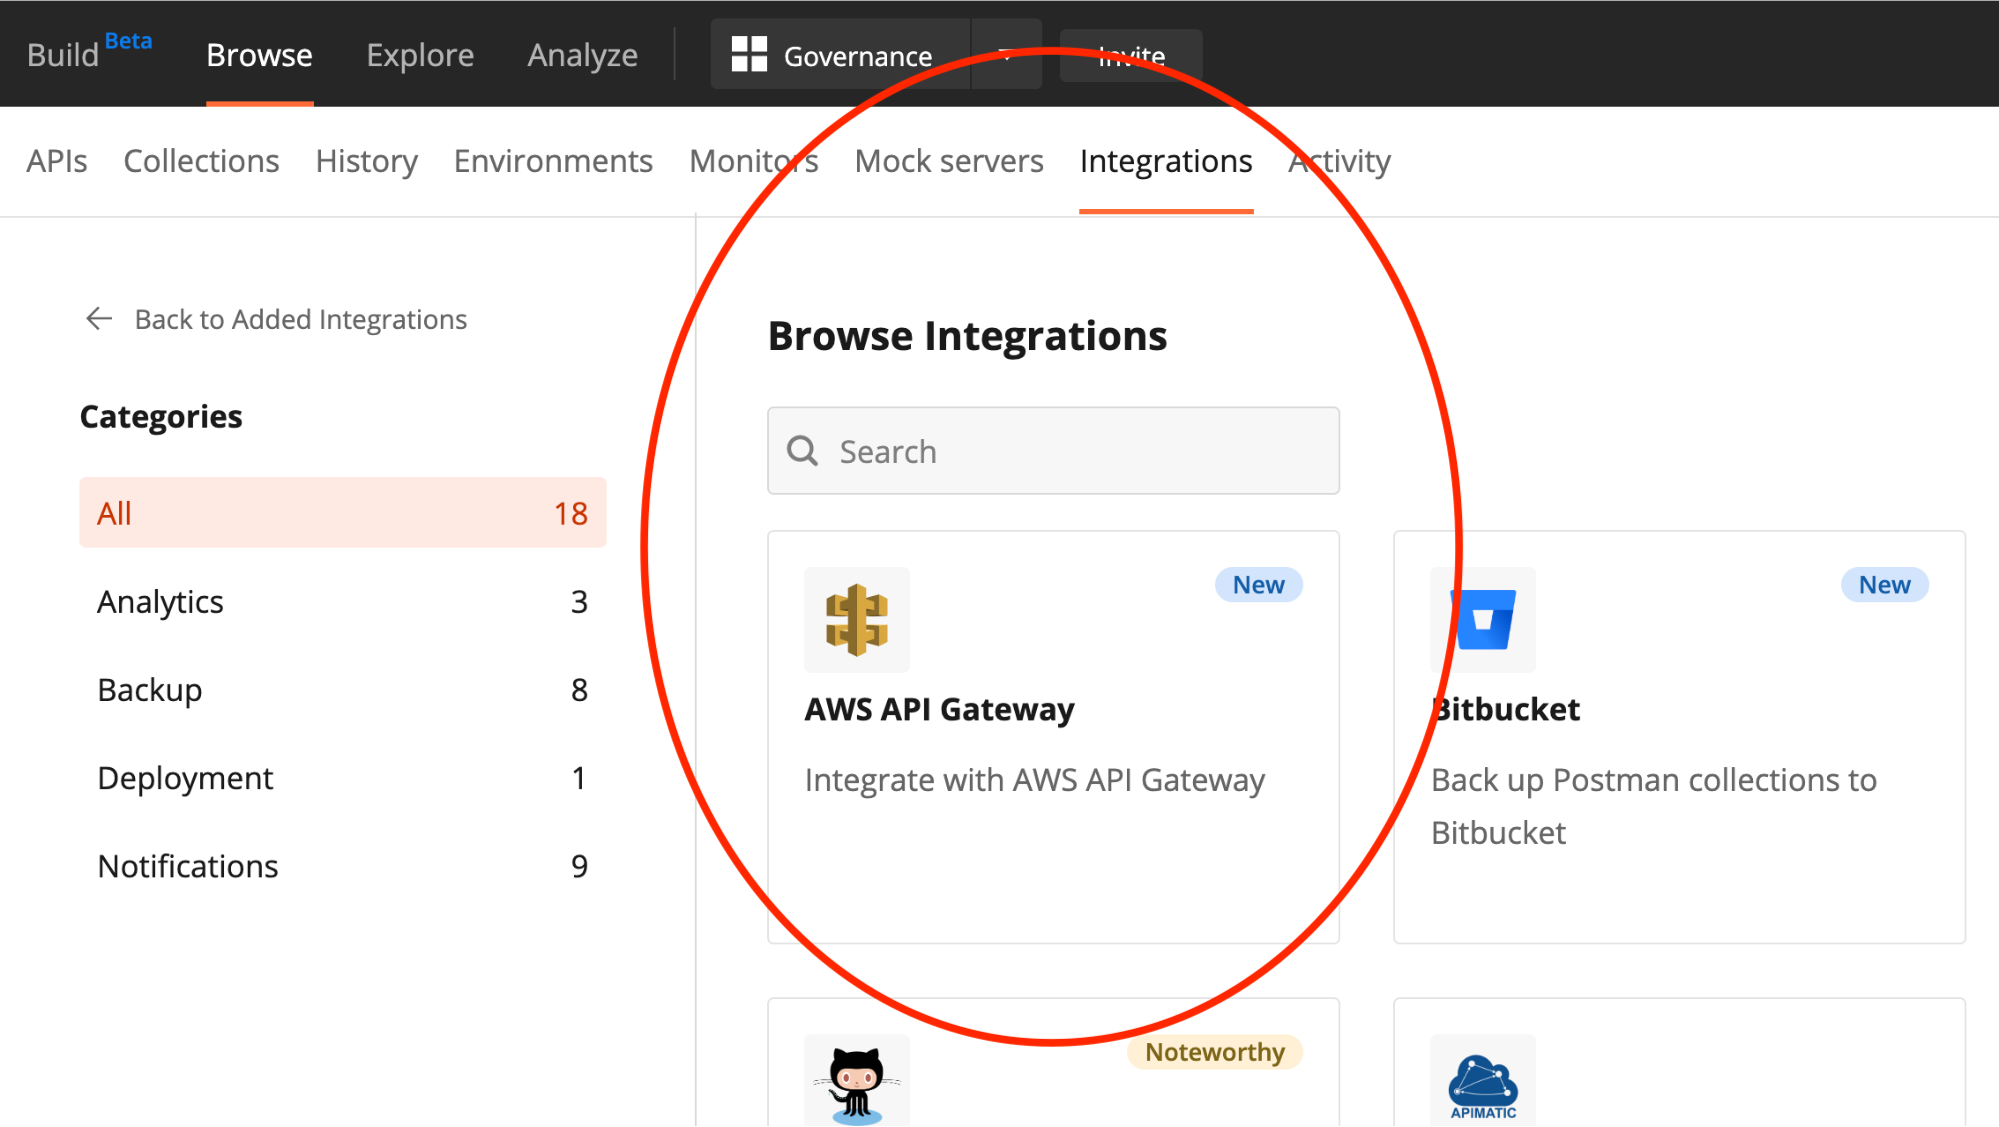 Browsing API integrations in workspace